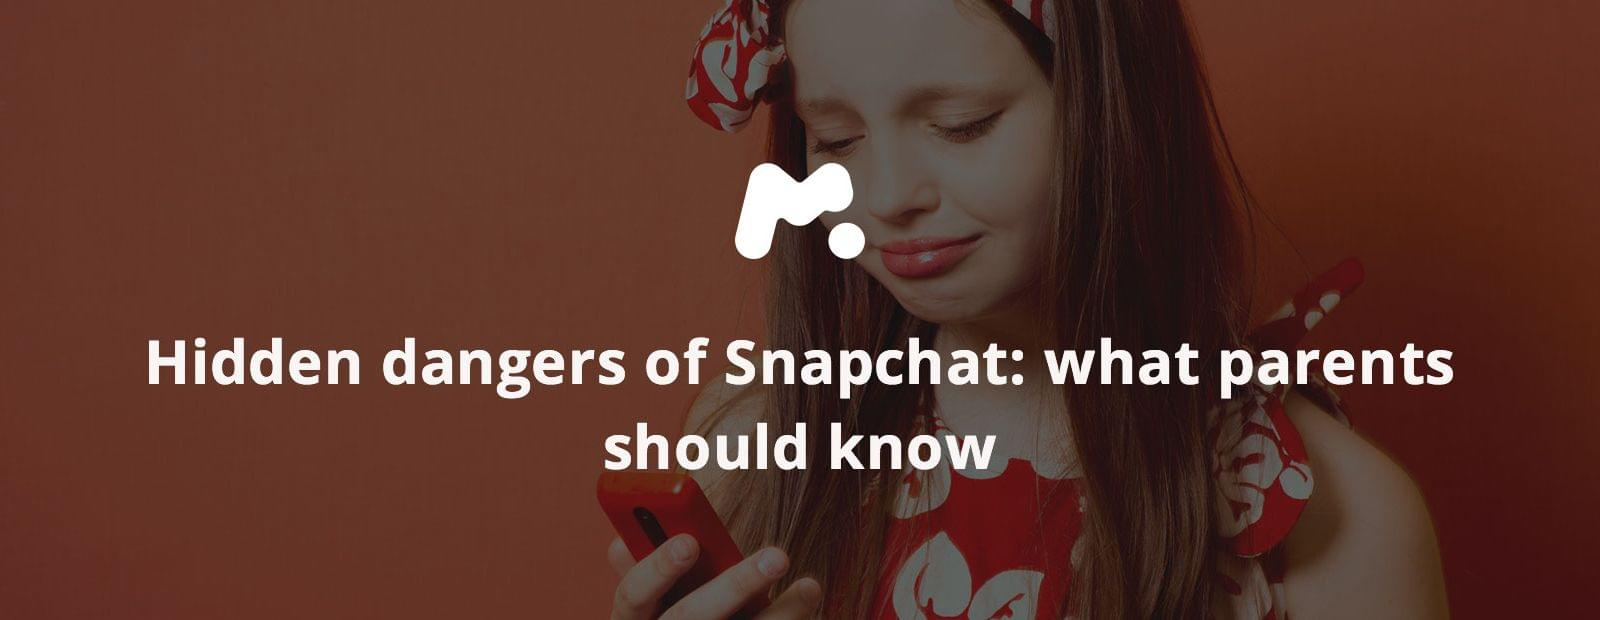 Hidden dangers of Snapchat: what parents should know